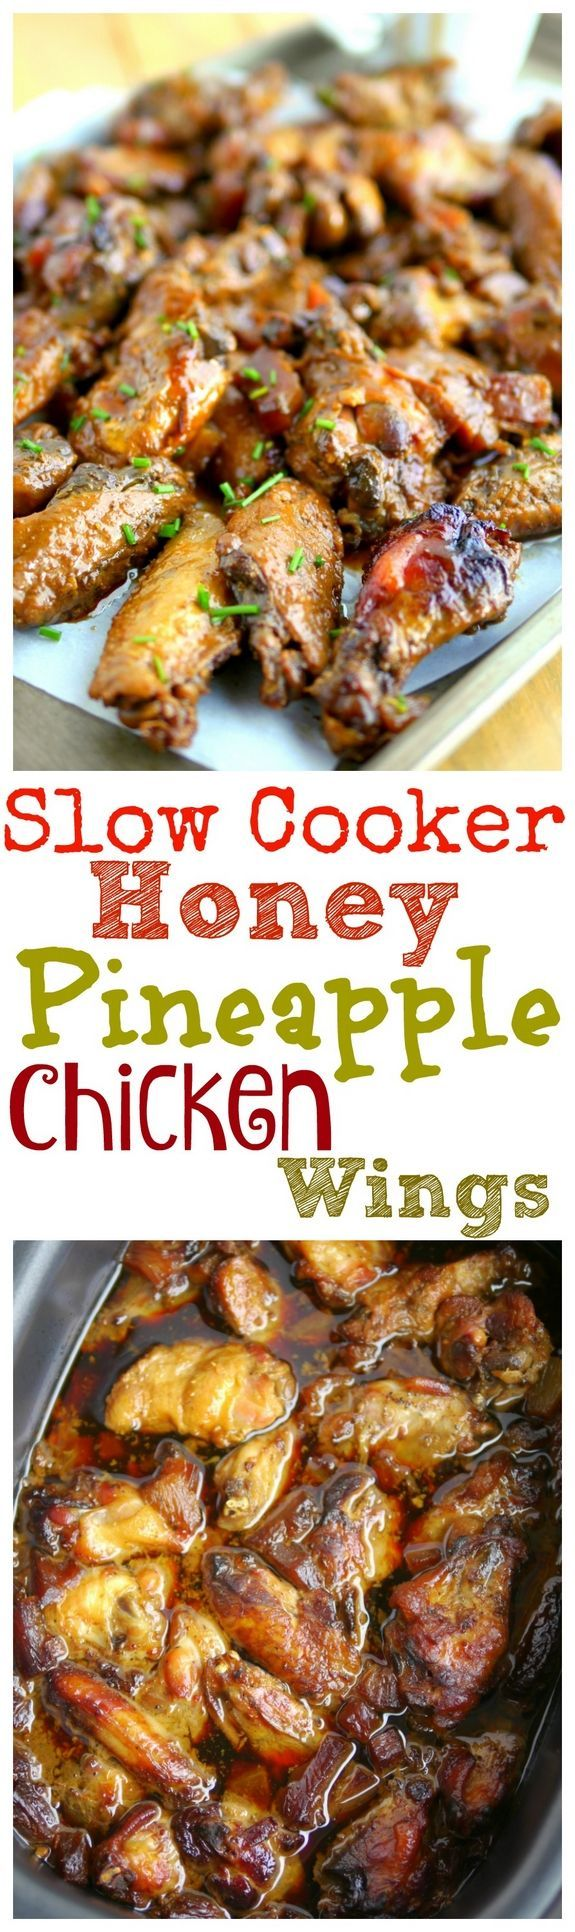 Slow Cooker Honey Pineapple Chicken Wings are your perfect